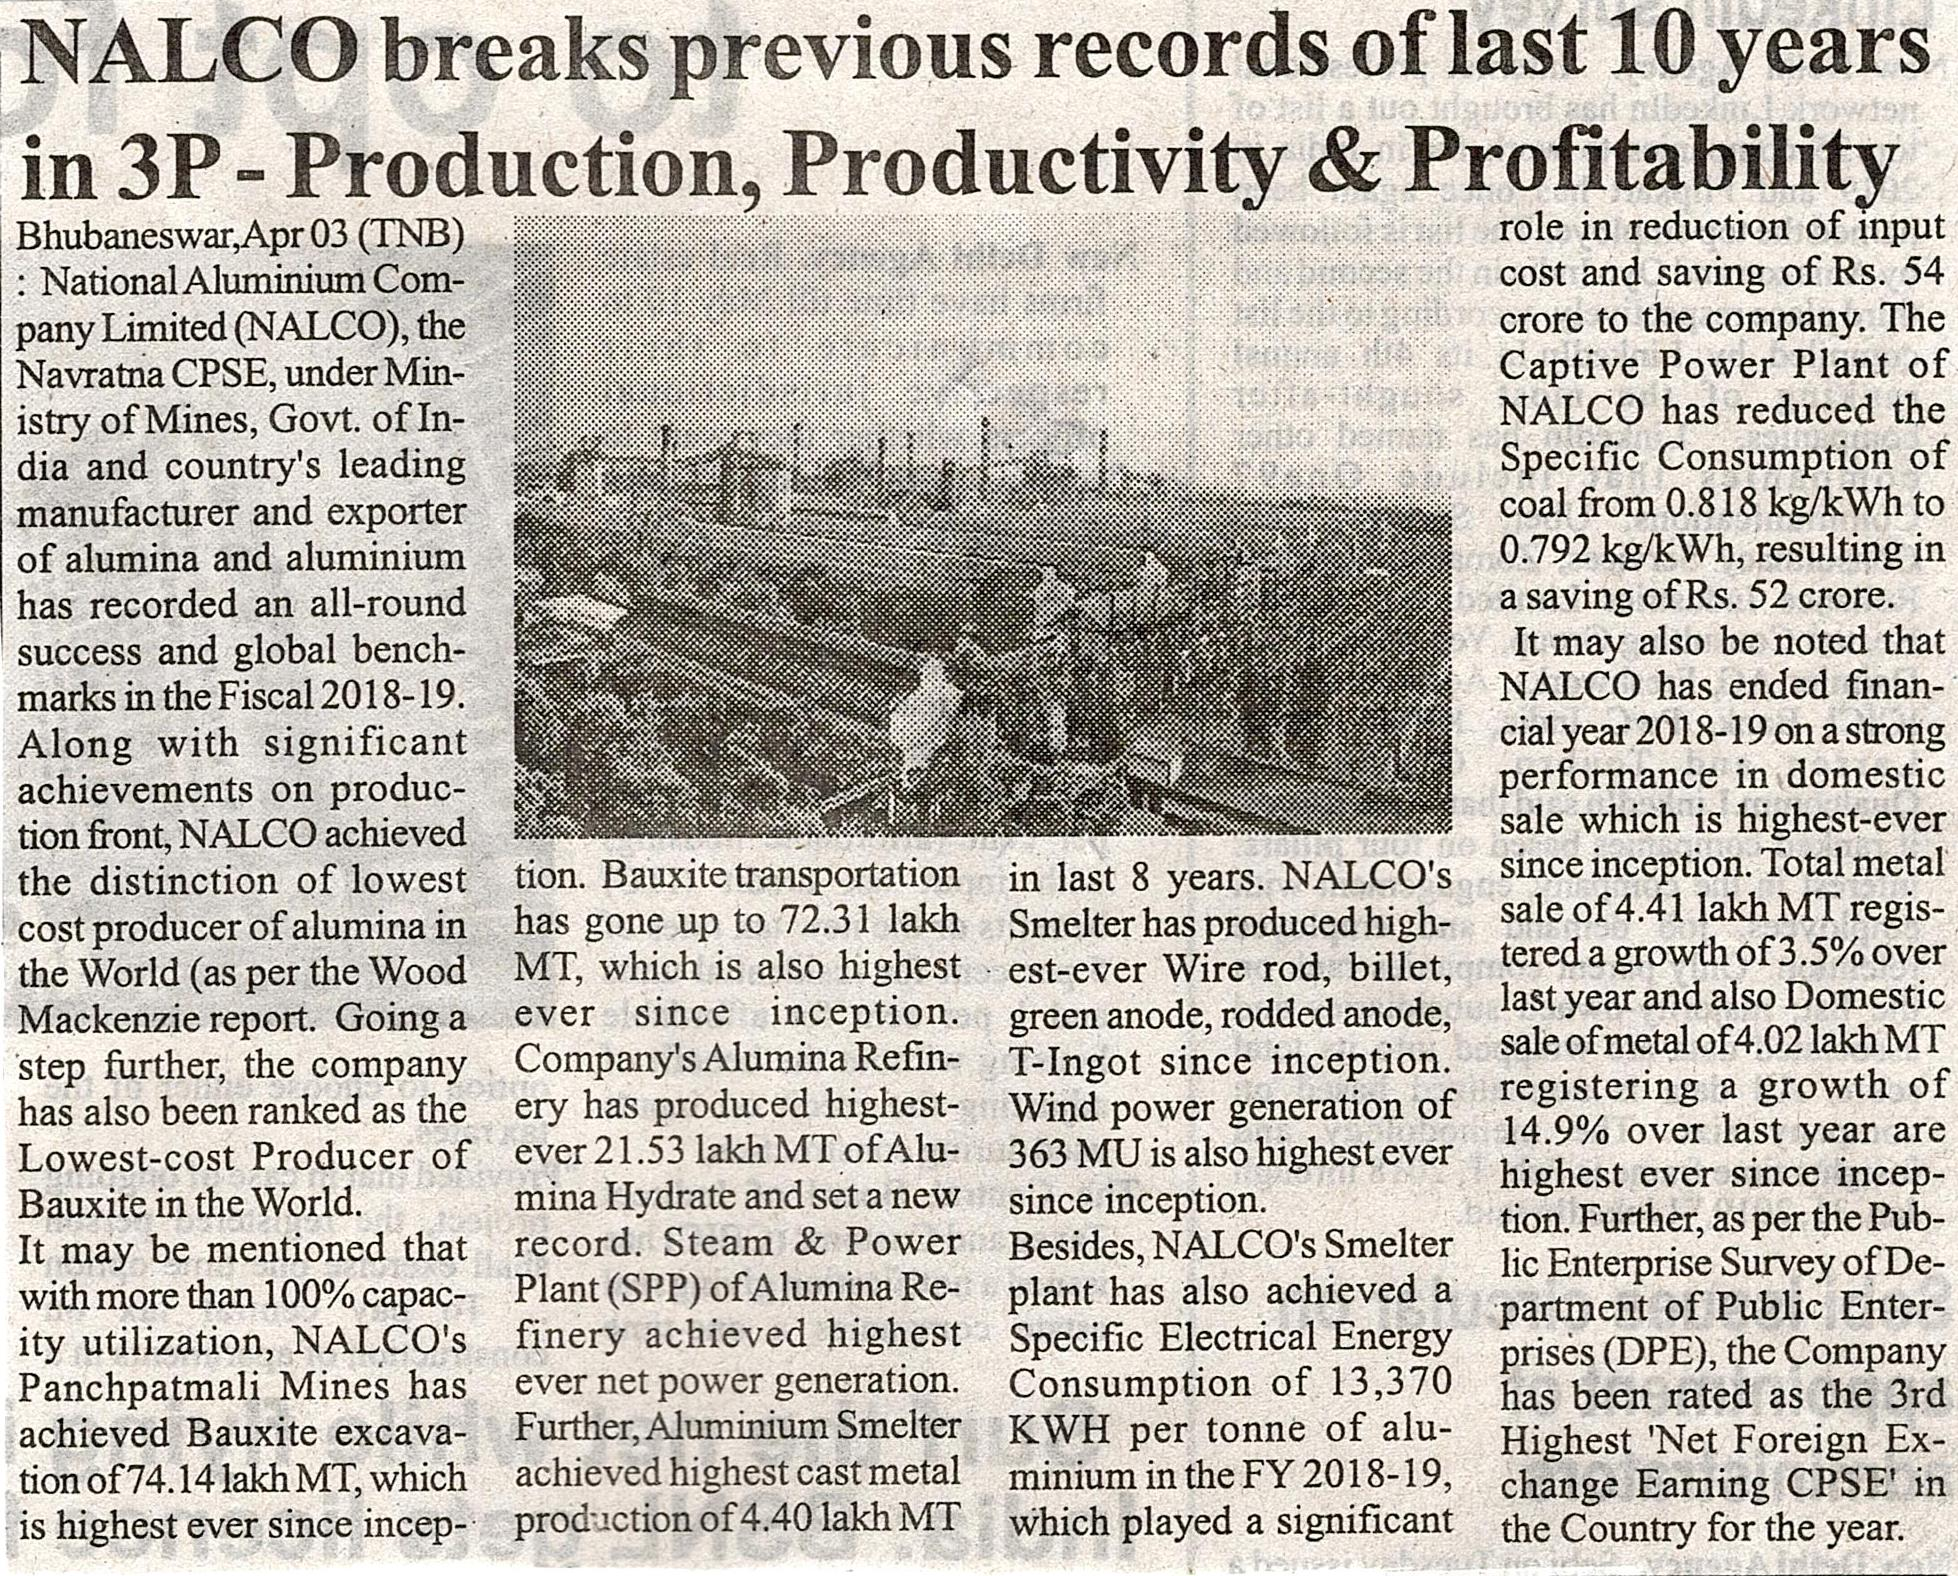 NALCO breakers previous records of last 10 years in 3P – Production,Productivity & Profitability